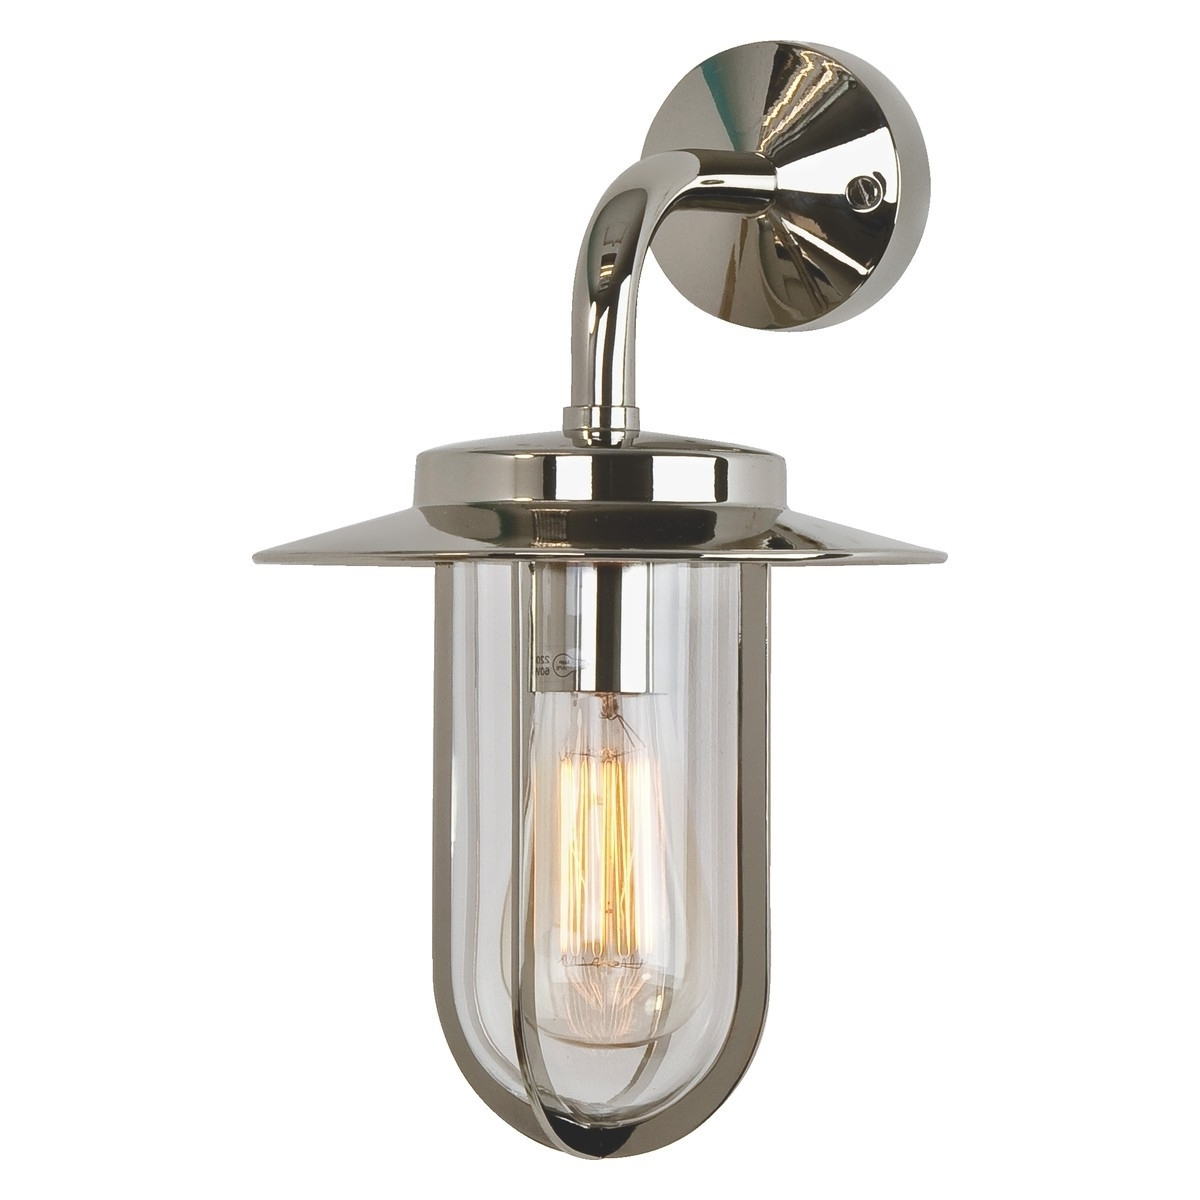 Outdoor Wall Lights At Homebase For Most Current Outdoor Wall Lights Homebase • Outdoor Lighting (View 11 of 20)